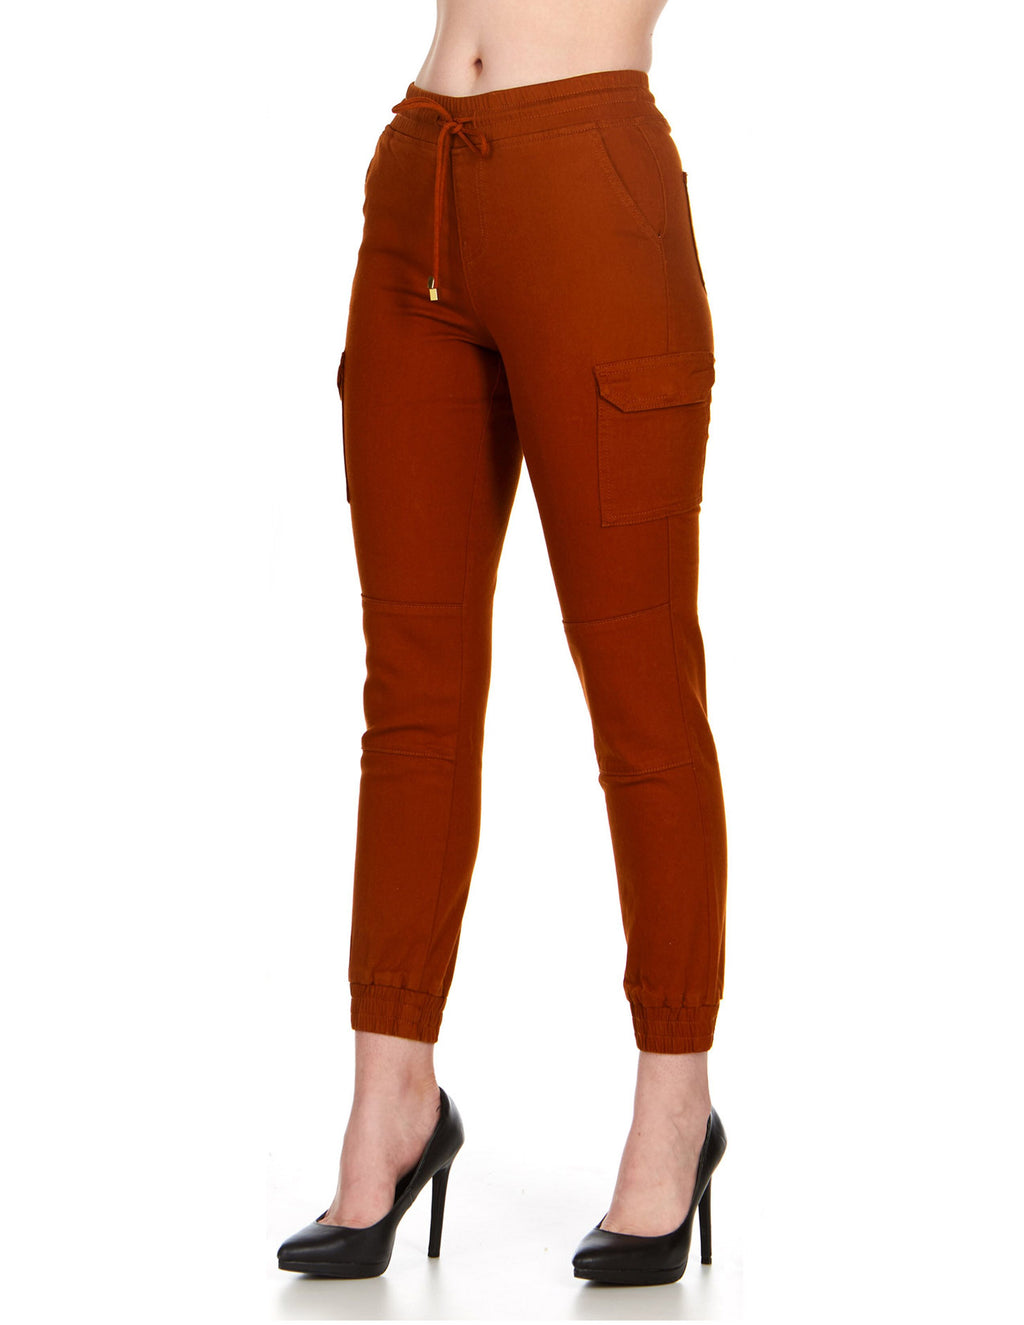 ELITE JEANS High Waisted Pull-On Cargo Joggers Women | Rust (P19562-84)